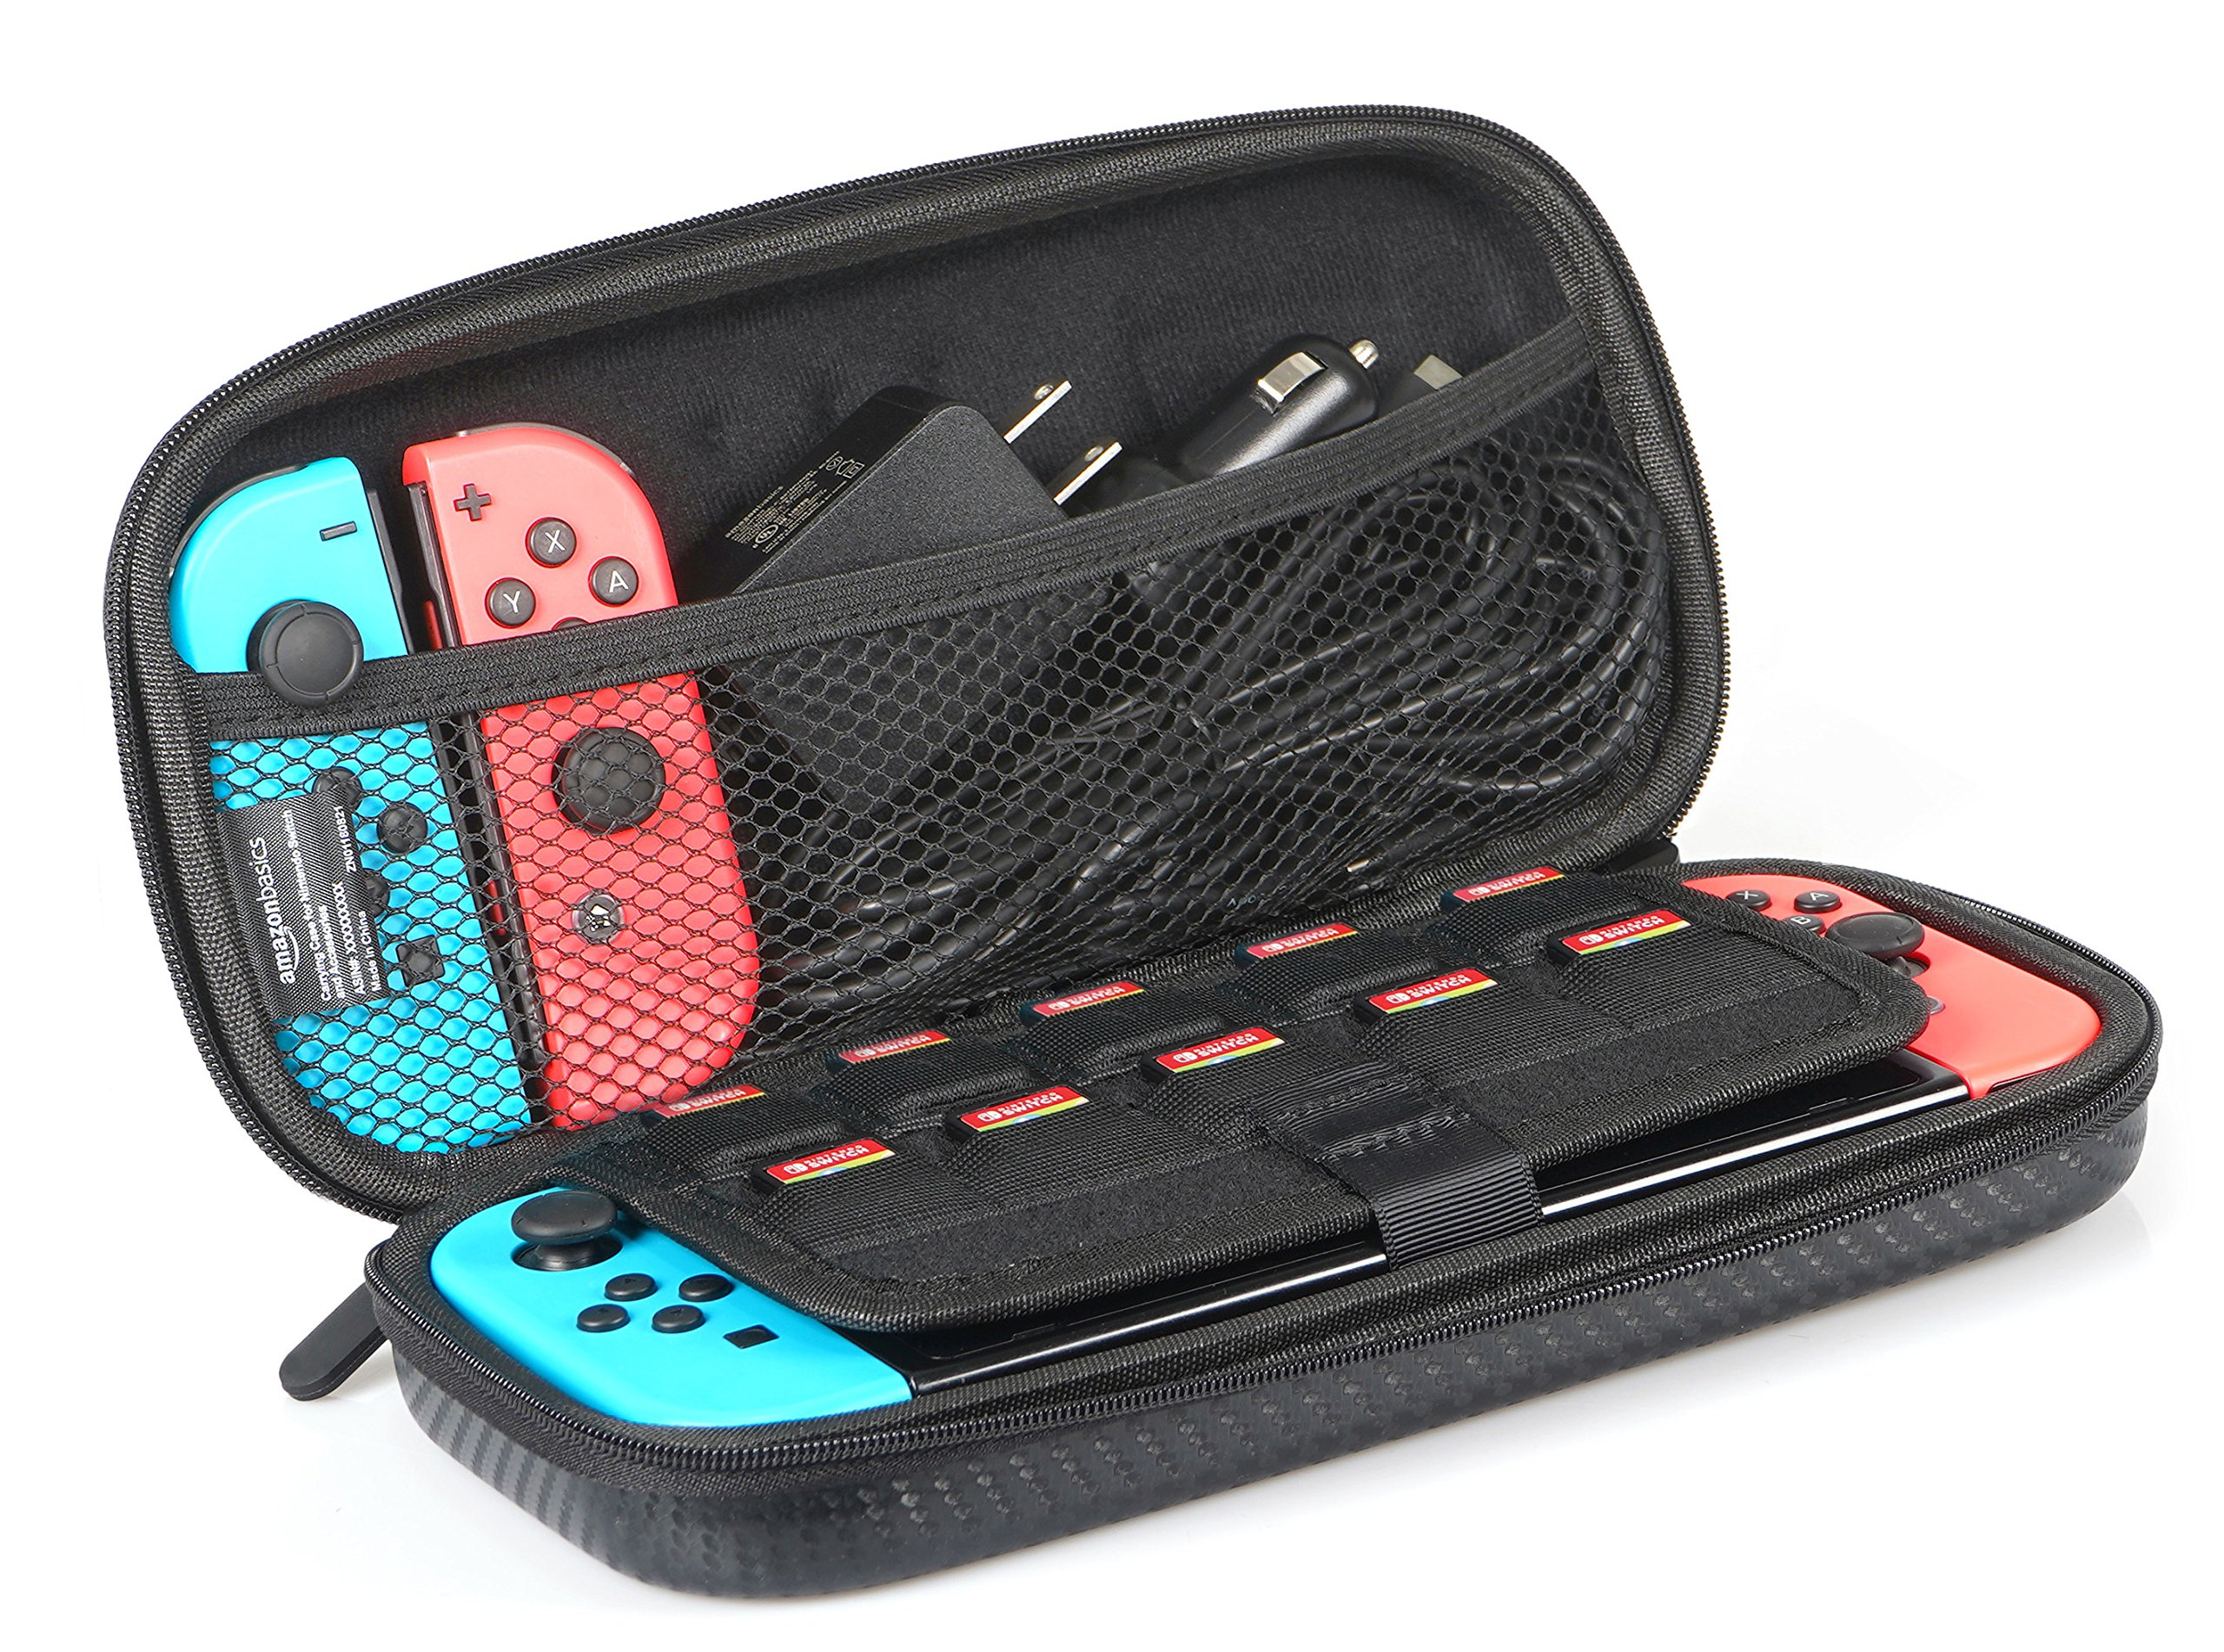 AmazonBasics Carrying Case for Nintendo Switch and Accessories